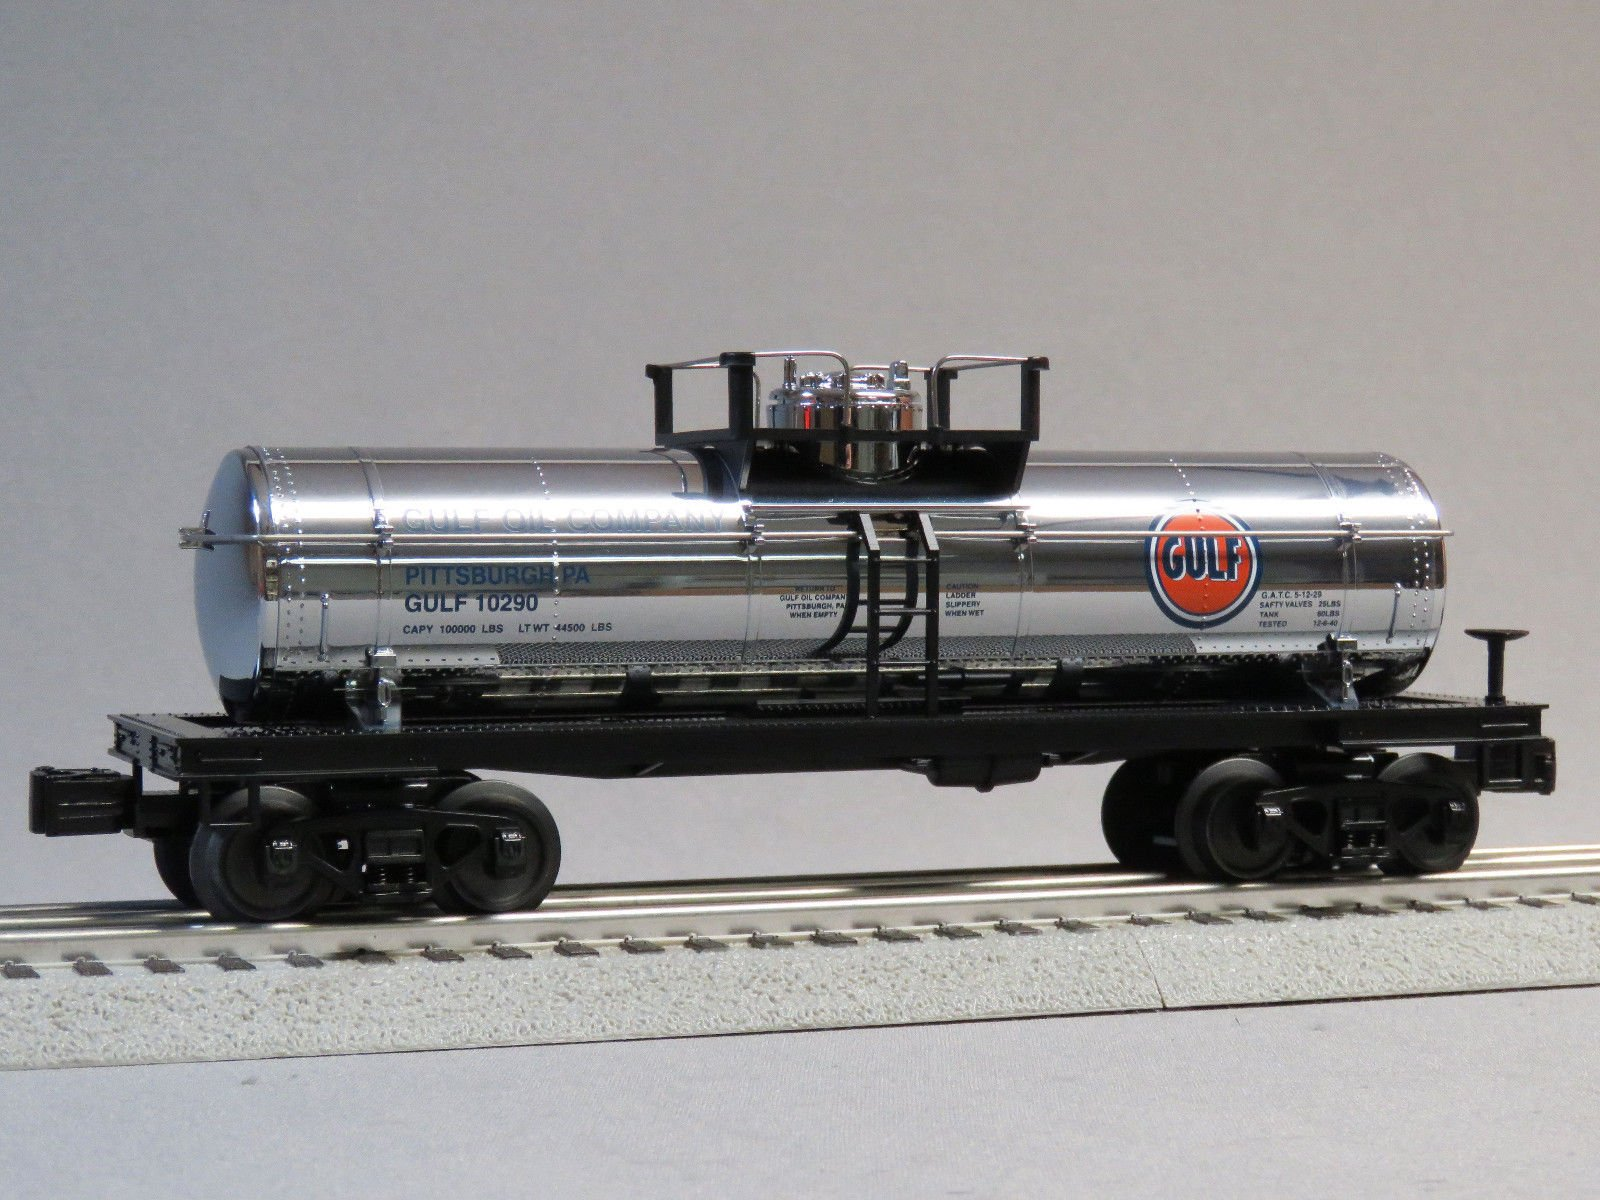 MTH RAIL KING GULF TANK CAR #10290 o gauge